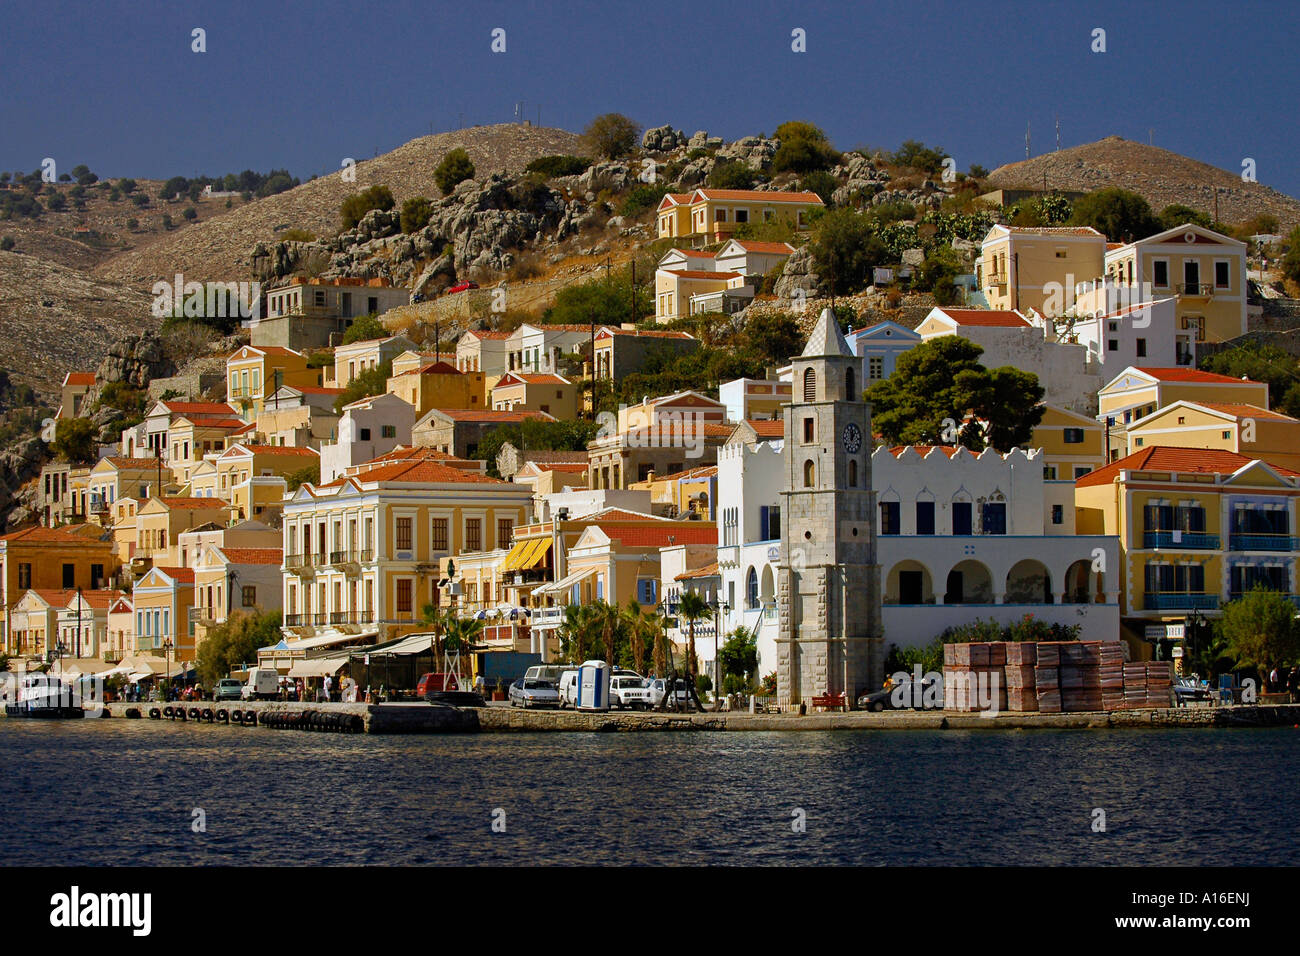 Isle Of Simi Symi Yialos Symi Harbour Greece Stock